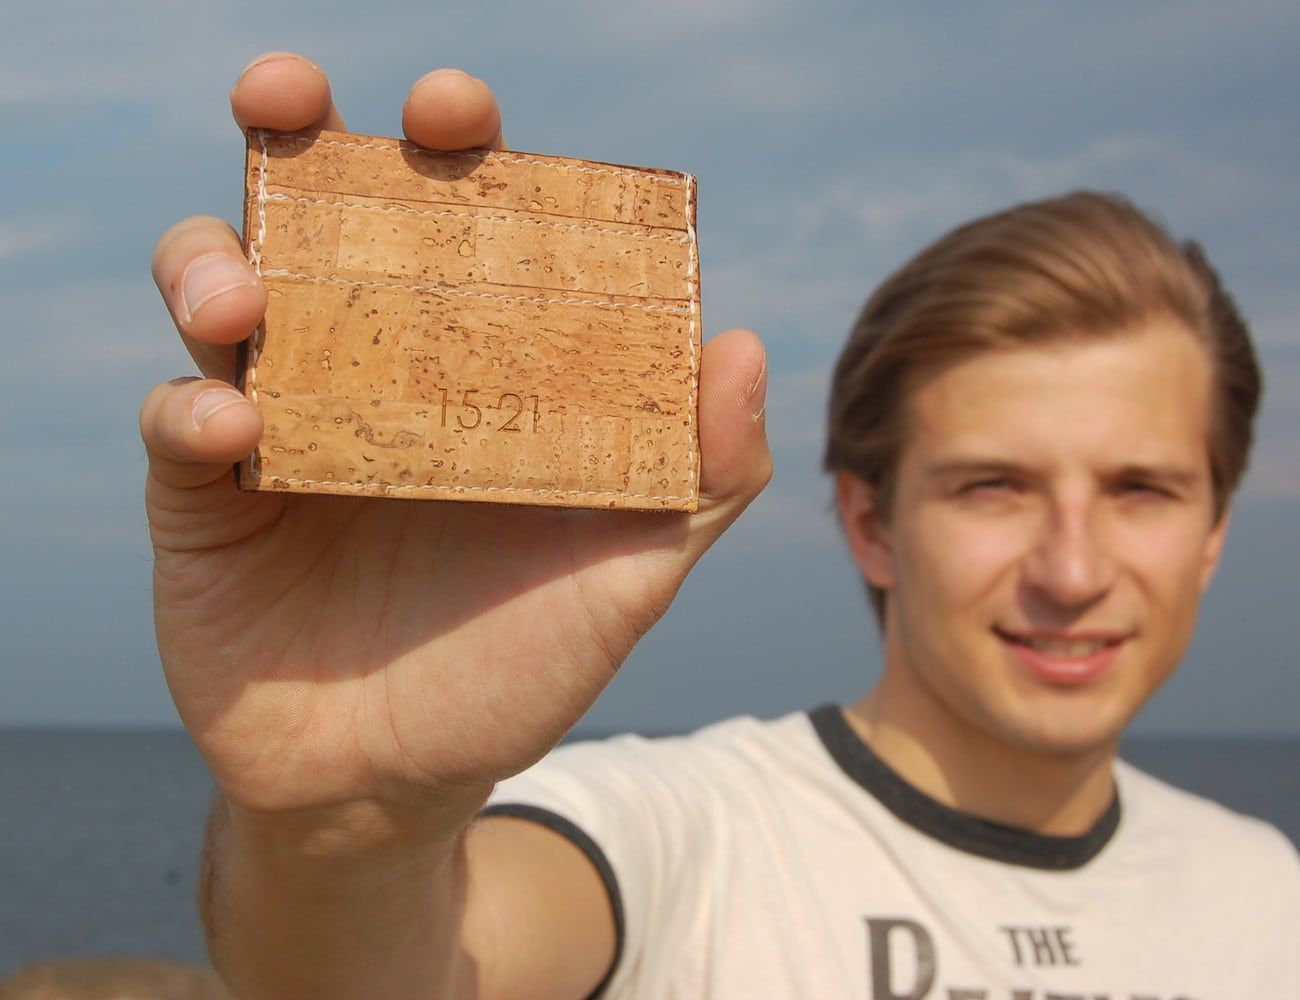 15:21 Cork Credit Card Holder is way cooler than a wallet